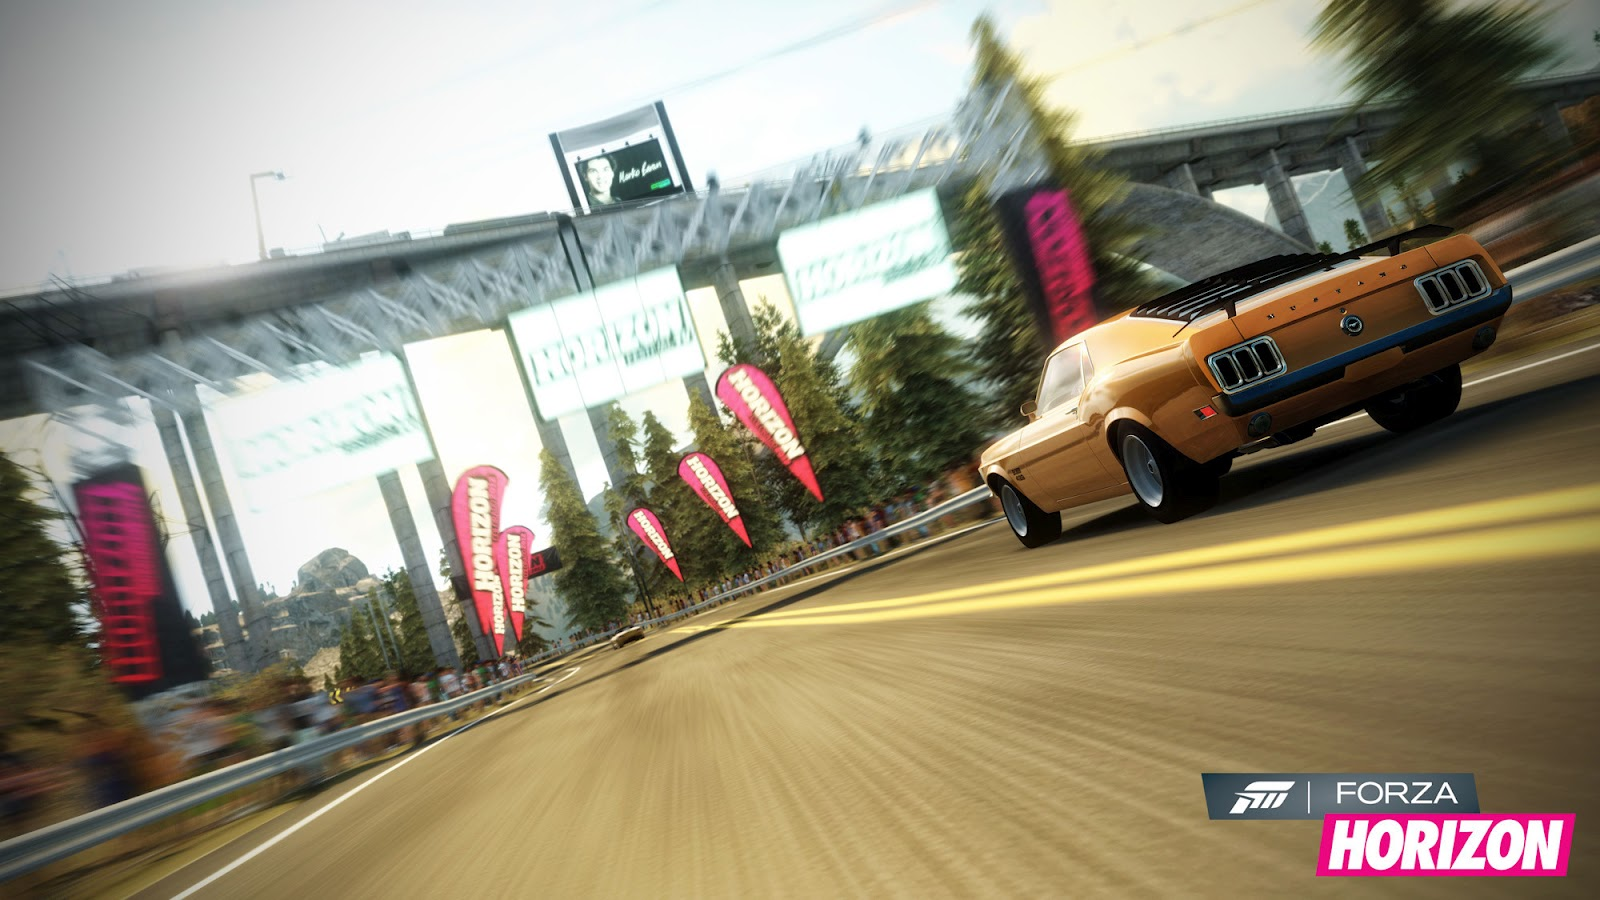 Forza Horizon HD & Widescreen Wallpaper 0.302876352952635